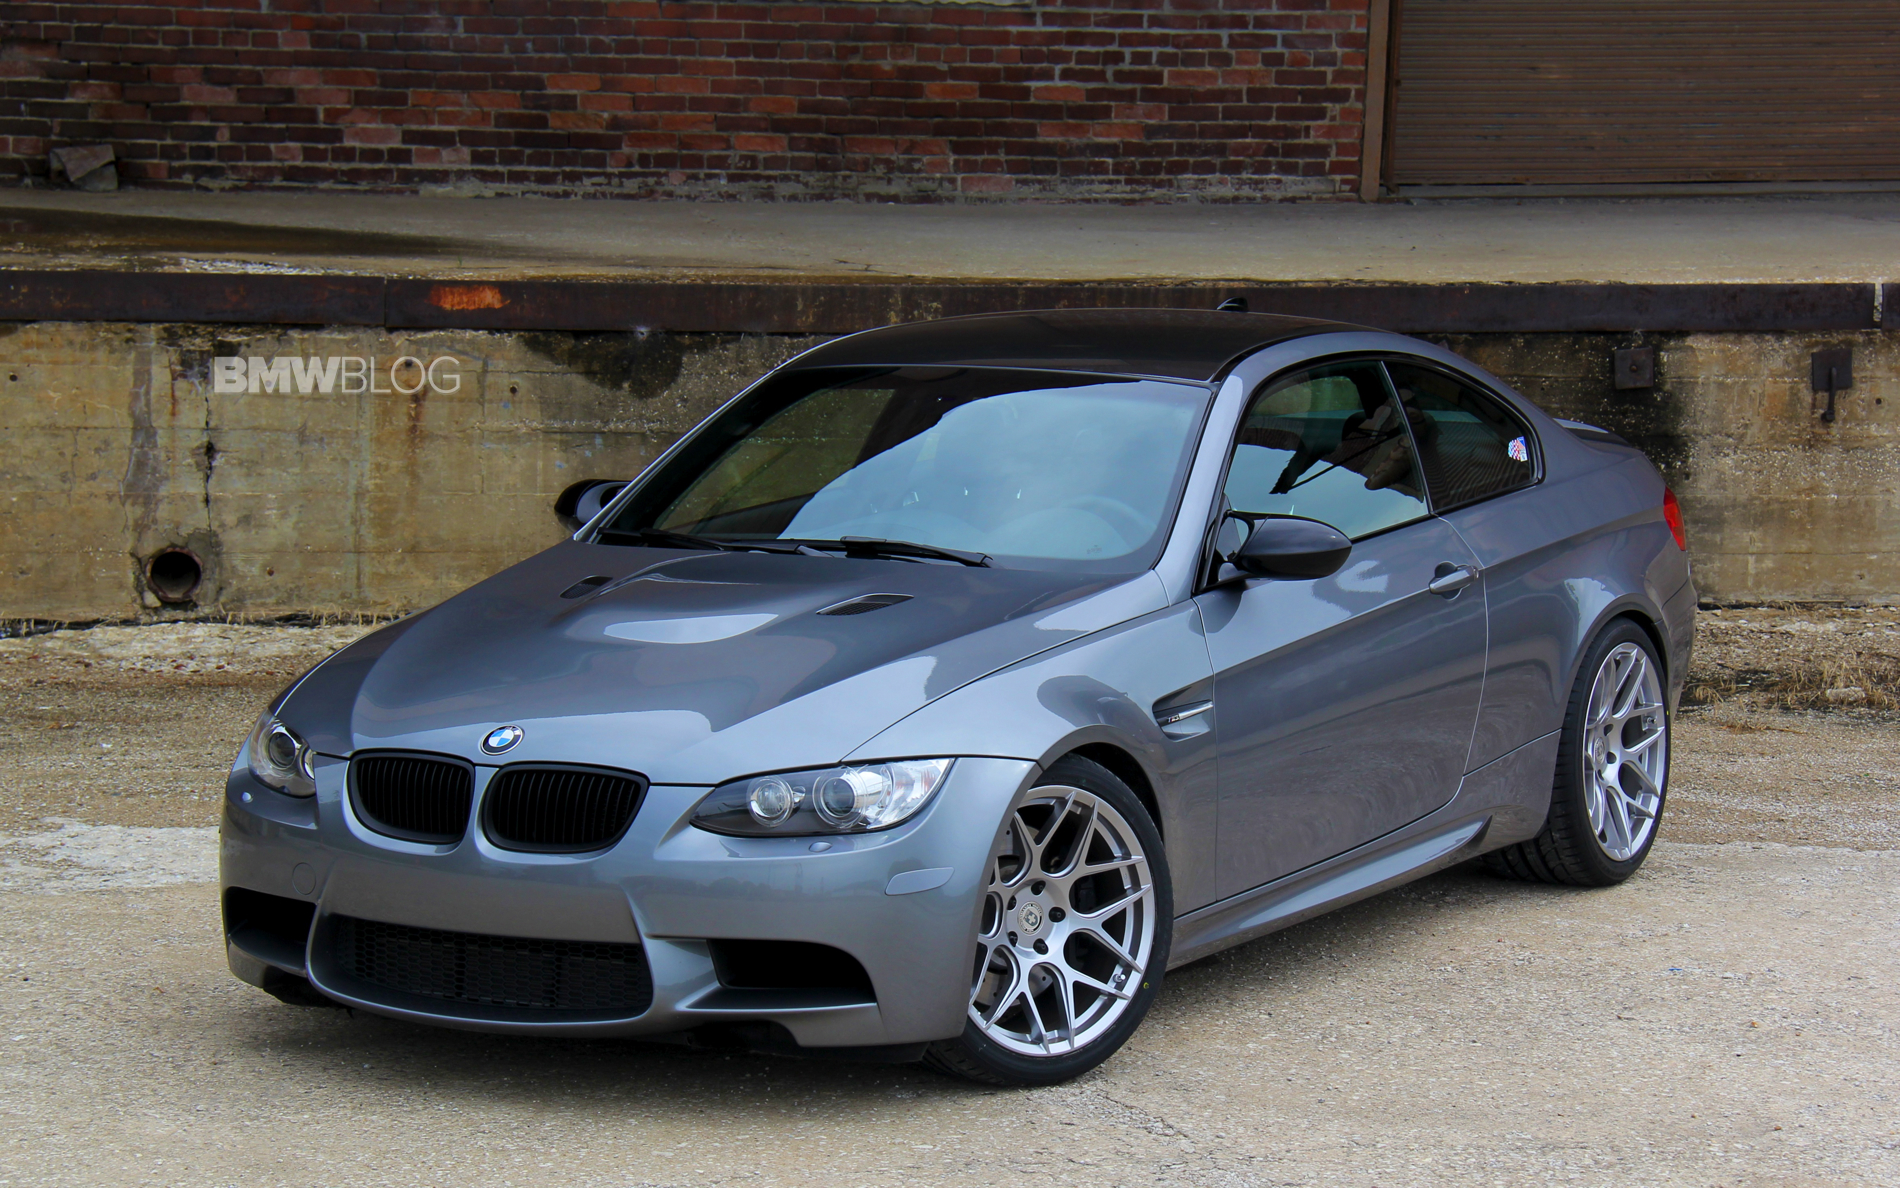 Hre Wheels E92 M3 18 750x468